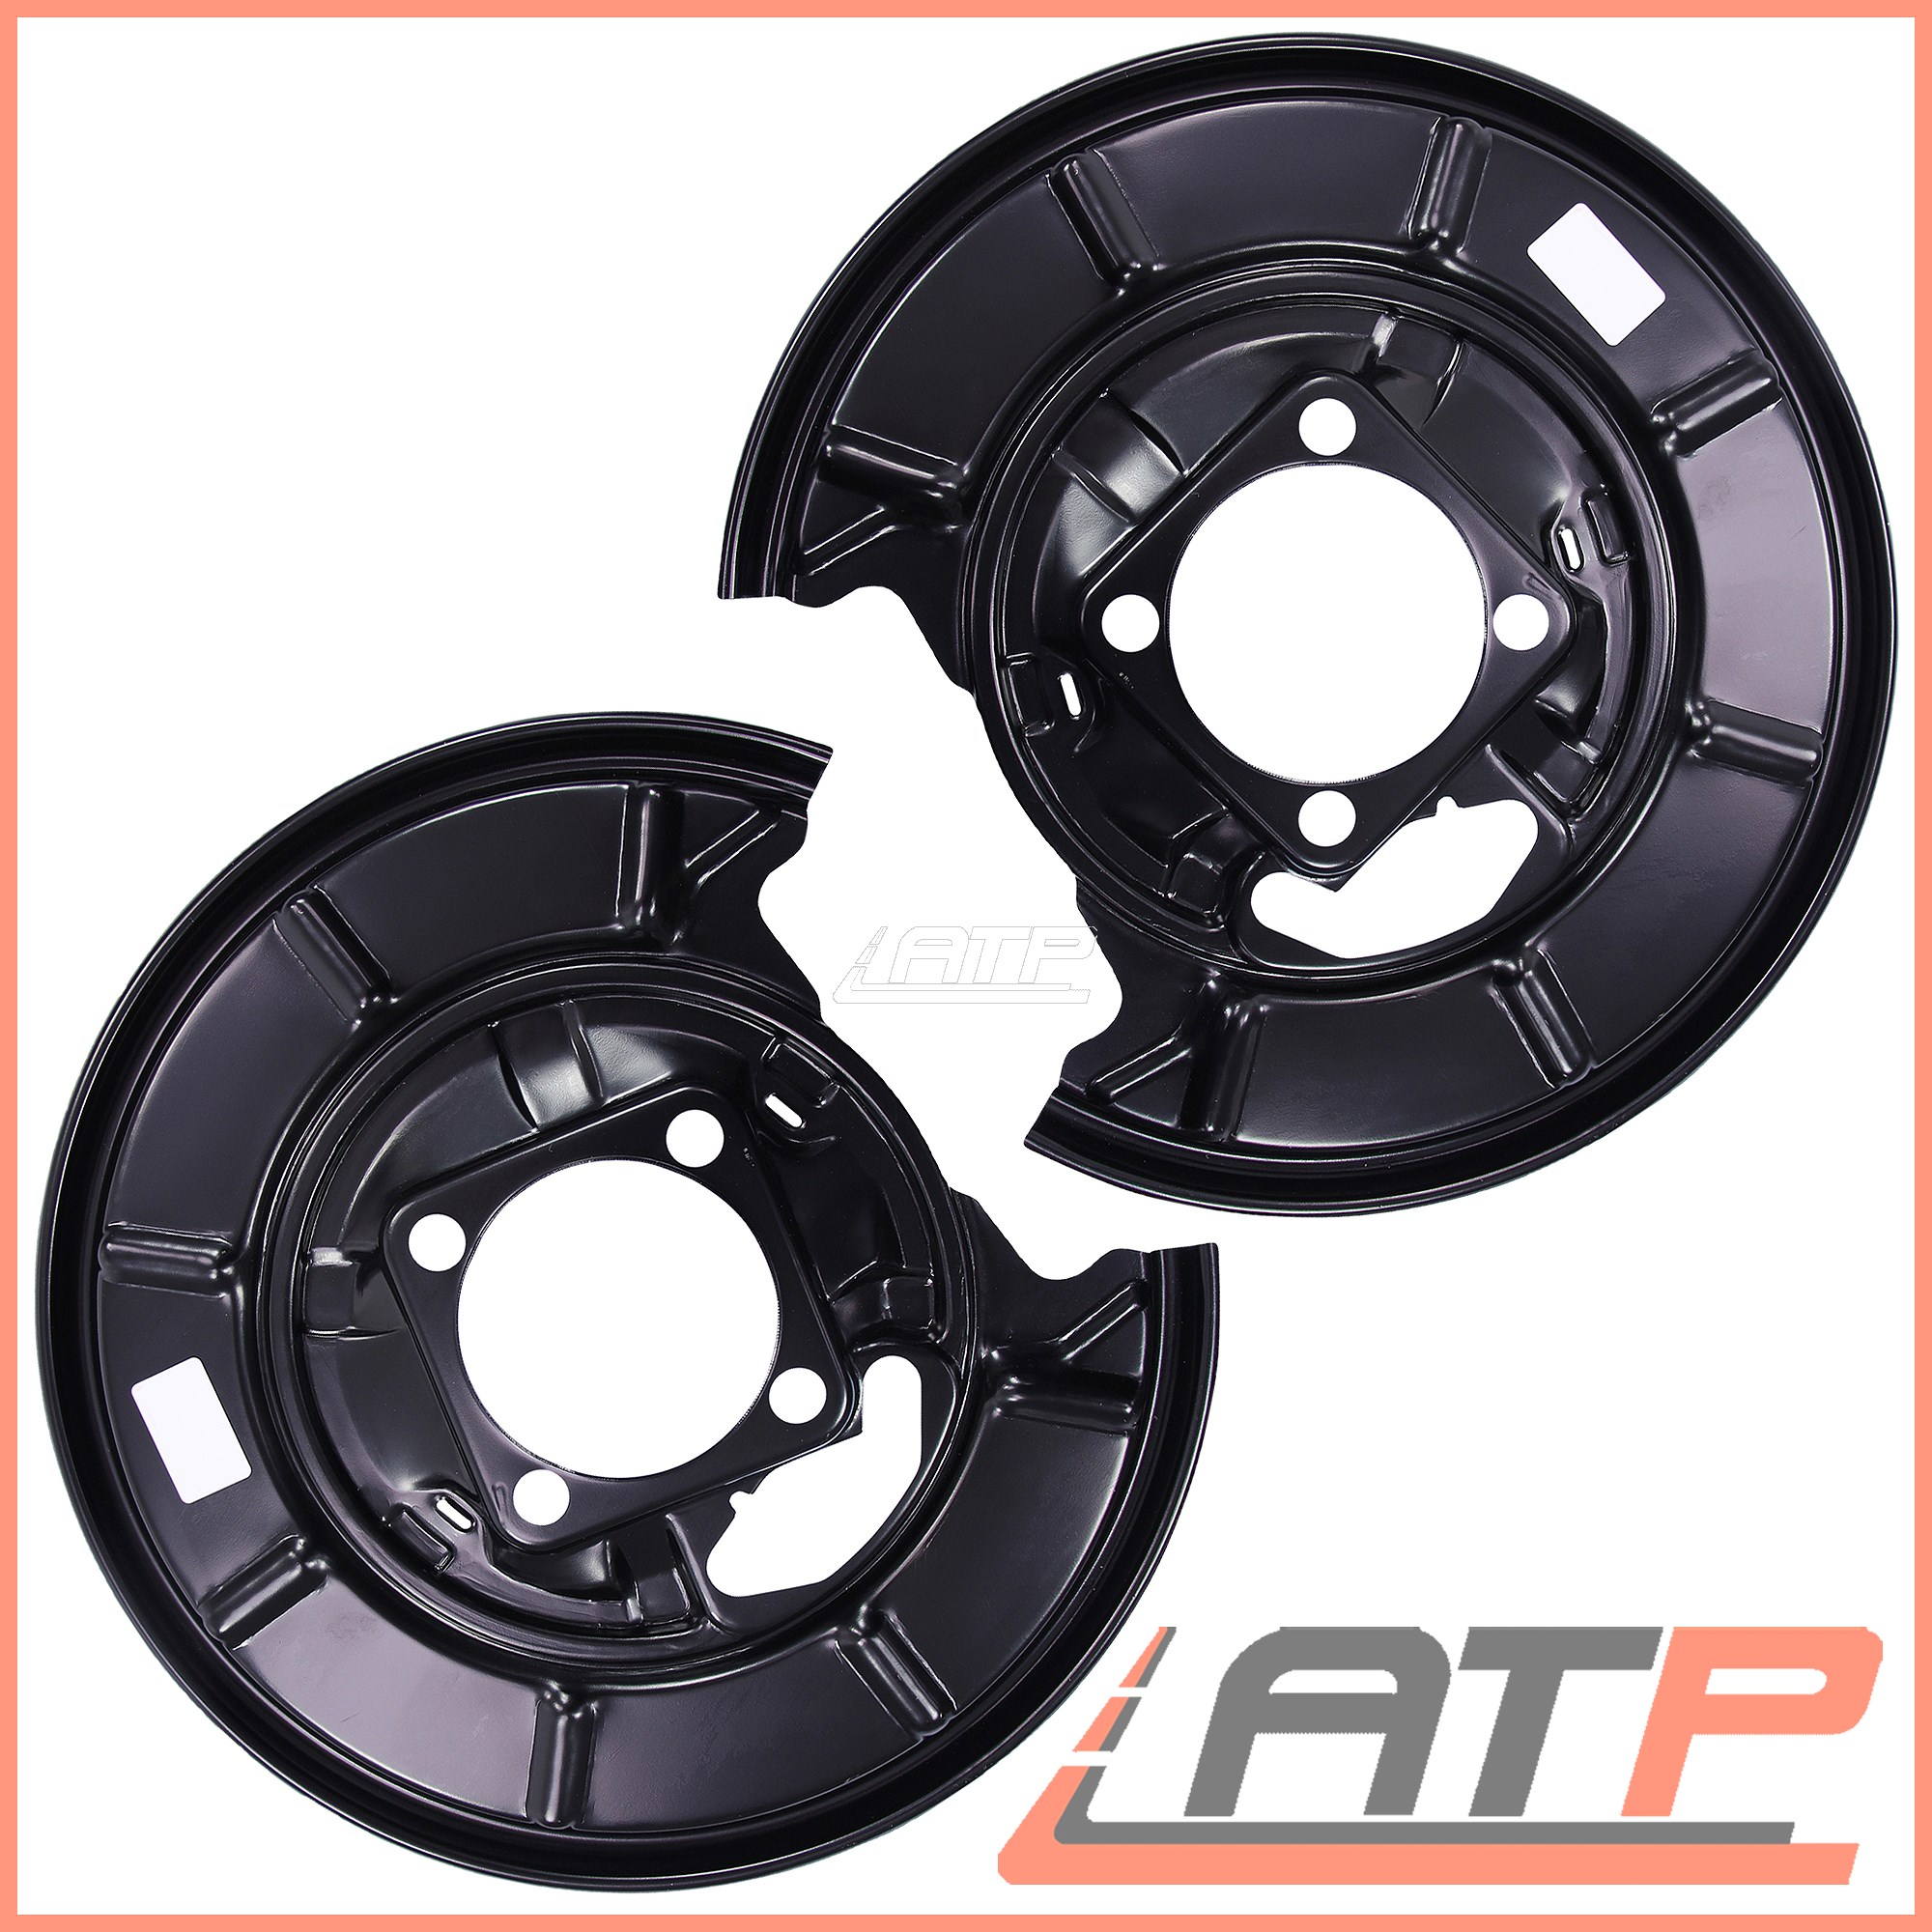 2X COVER PLATE FOR BRAKE DISC REAR MERCEDES A CLASS W169 B W245